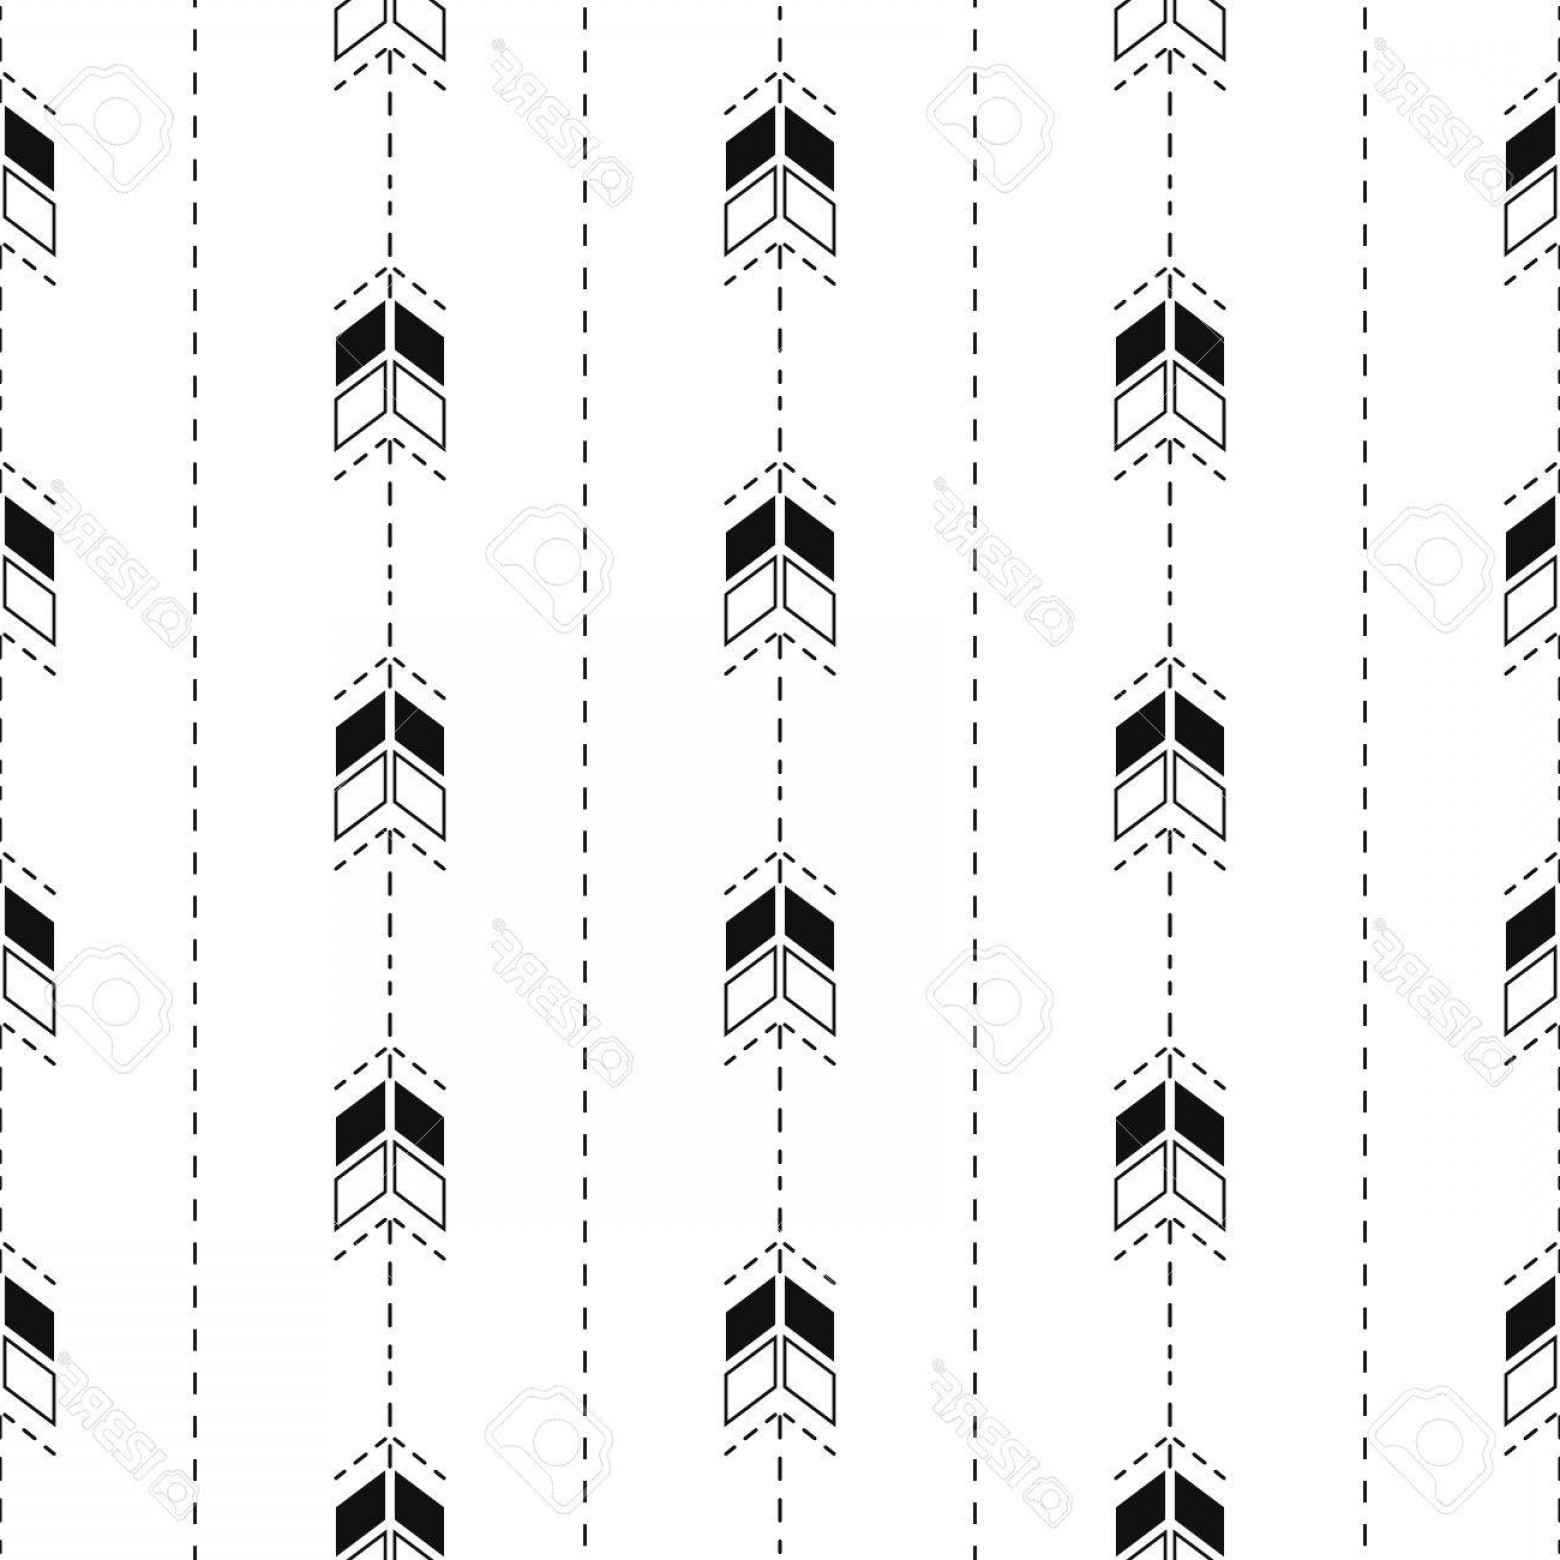 Small Arrow Vector: Photostock Vector Small Arrow Line Seamless Pattern Tiny Thin Arrows In Dashed Line Rows Tileable White Background